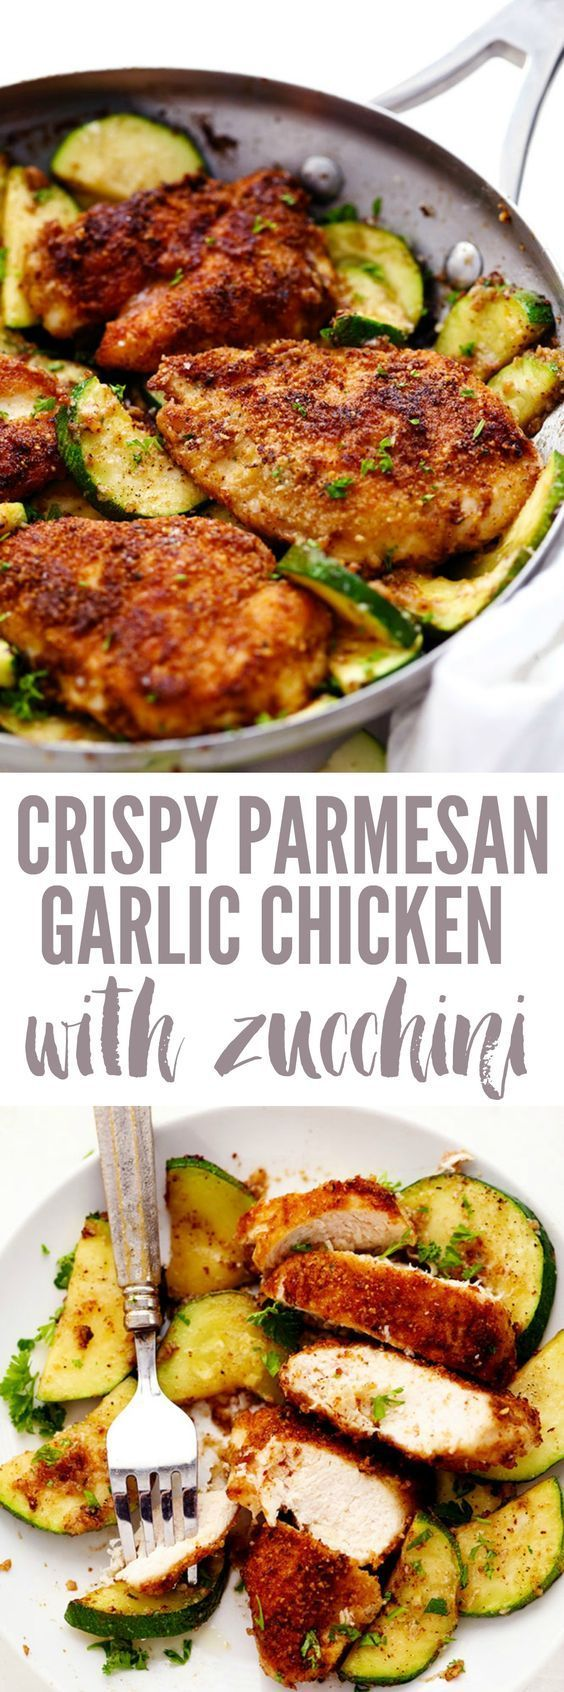 Crispy Parmesan Garlic Chicken with Zucchini is a fantastic one pan meal that…